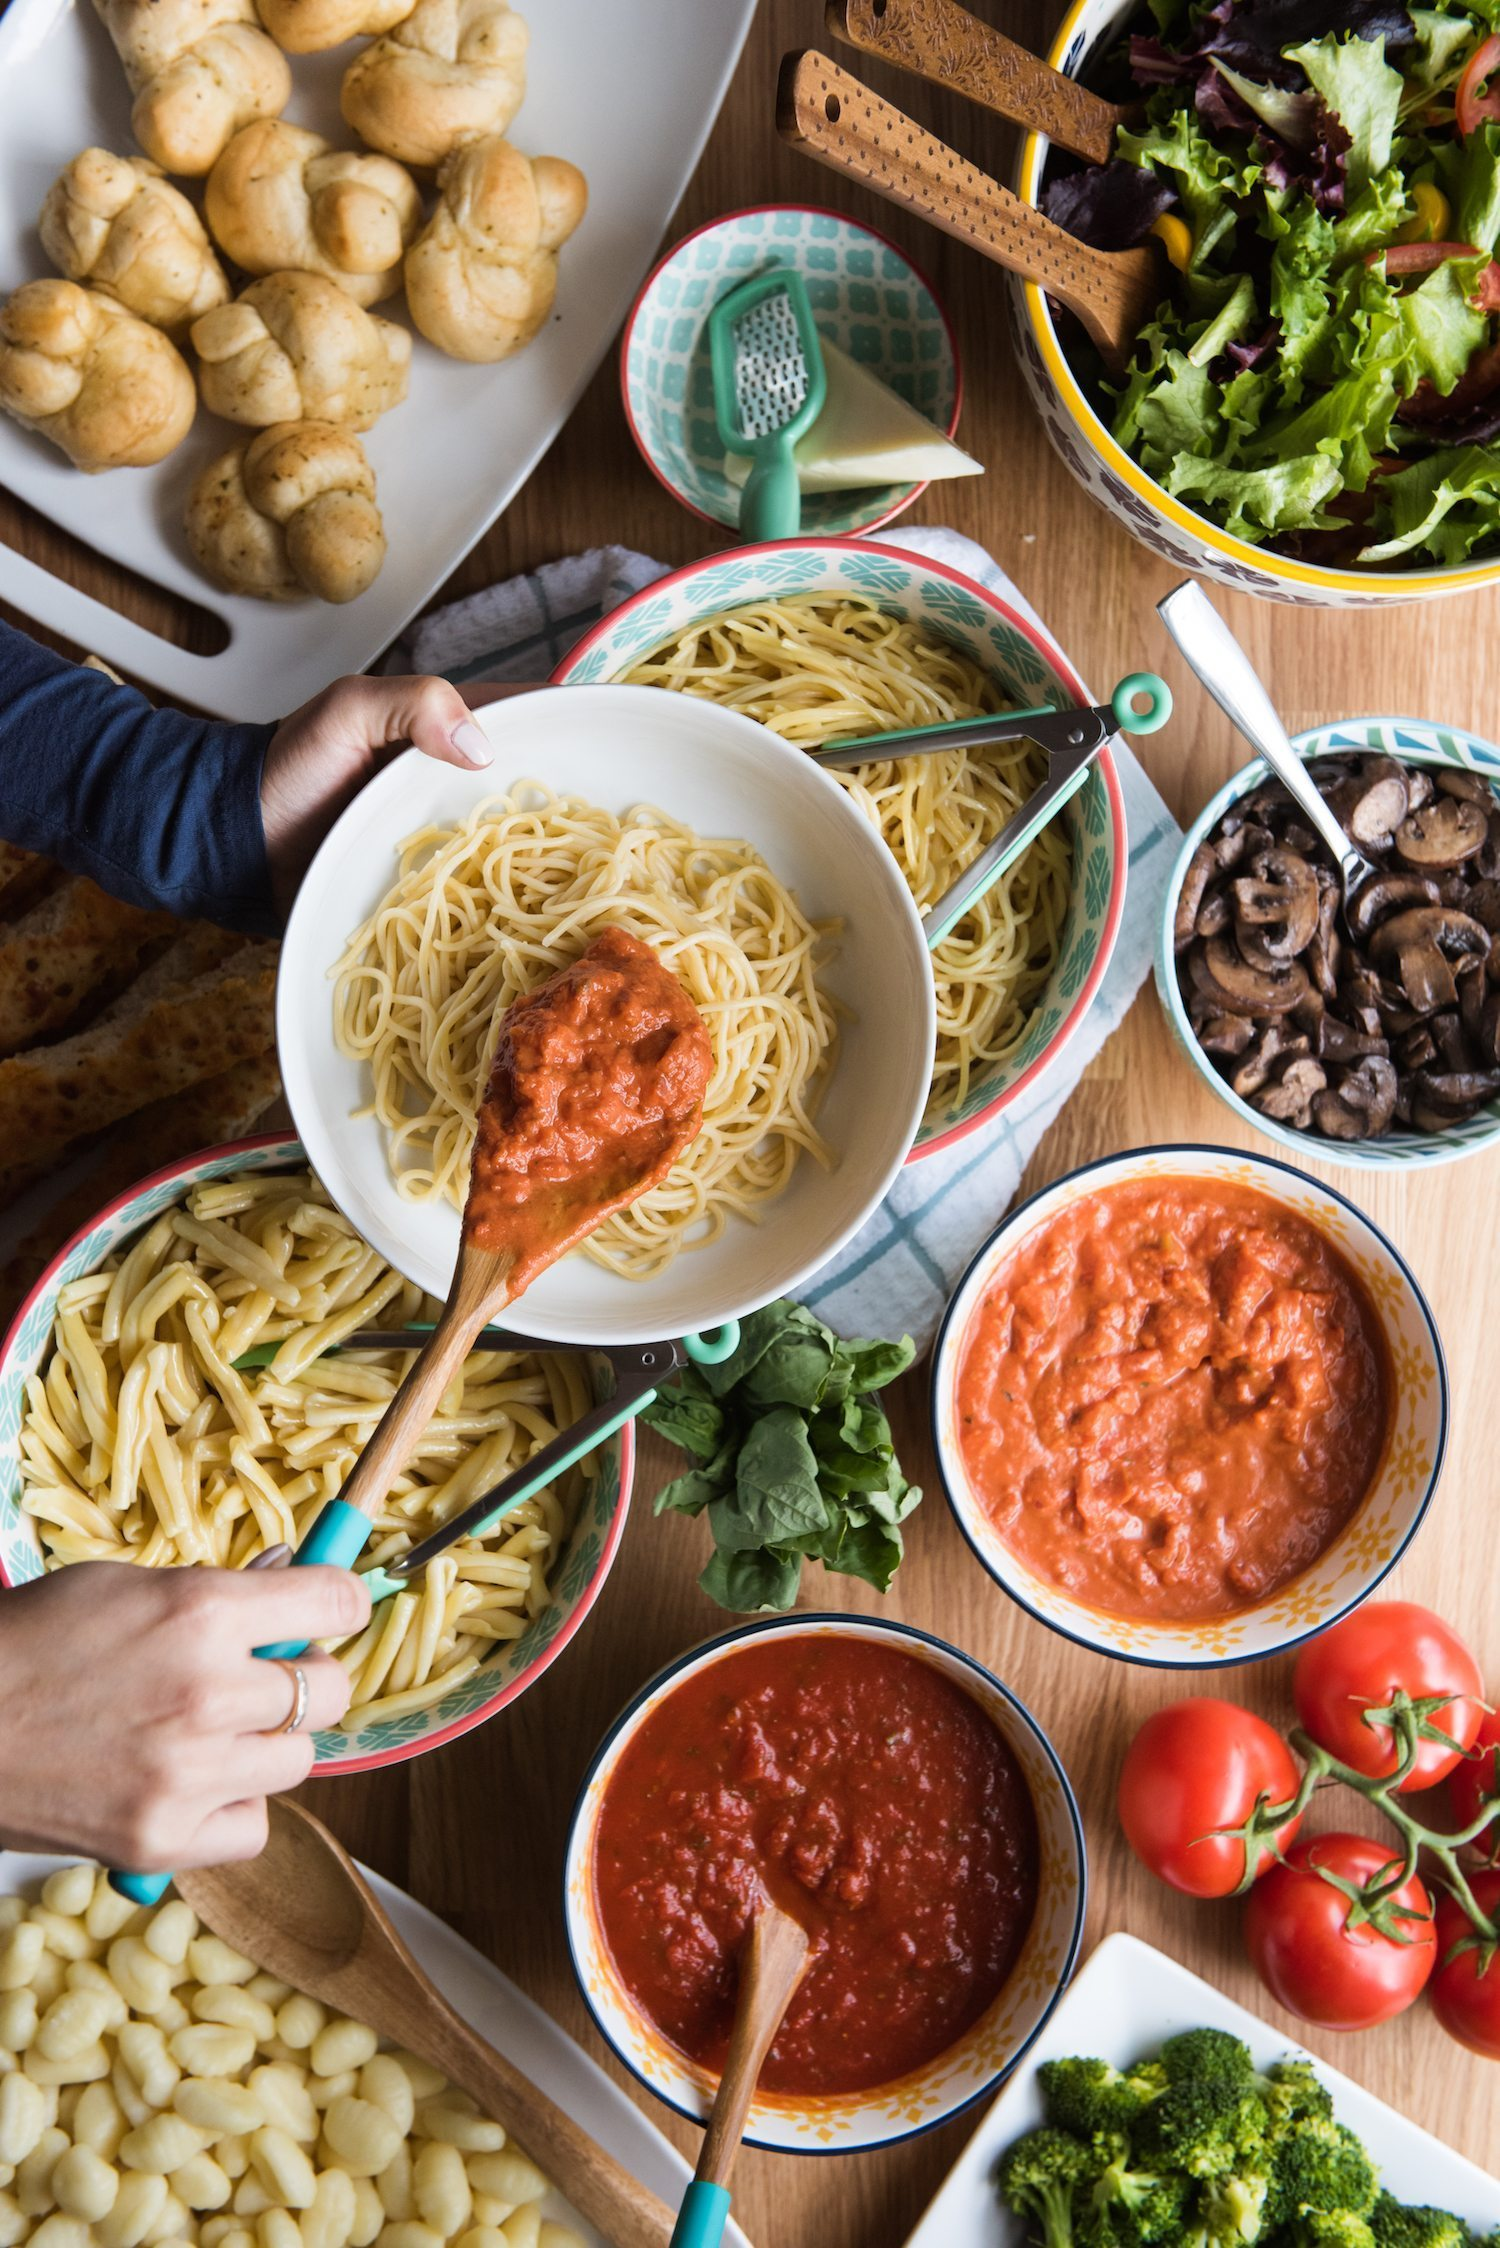 Entertain with a Make Your Own Pasta Bar | Click through to visit The Sweetest Occasion for entertaining tips, party ideas, party recipes and more from @cydconverse